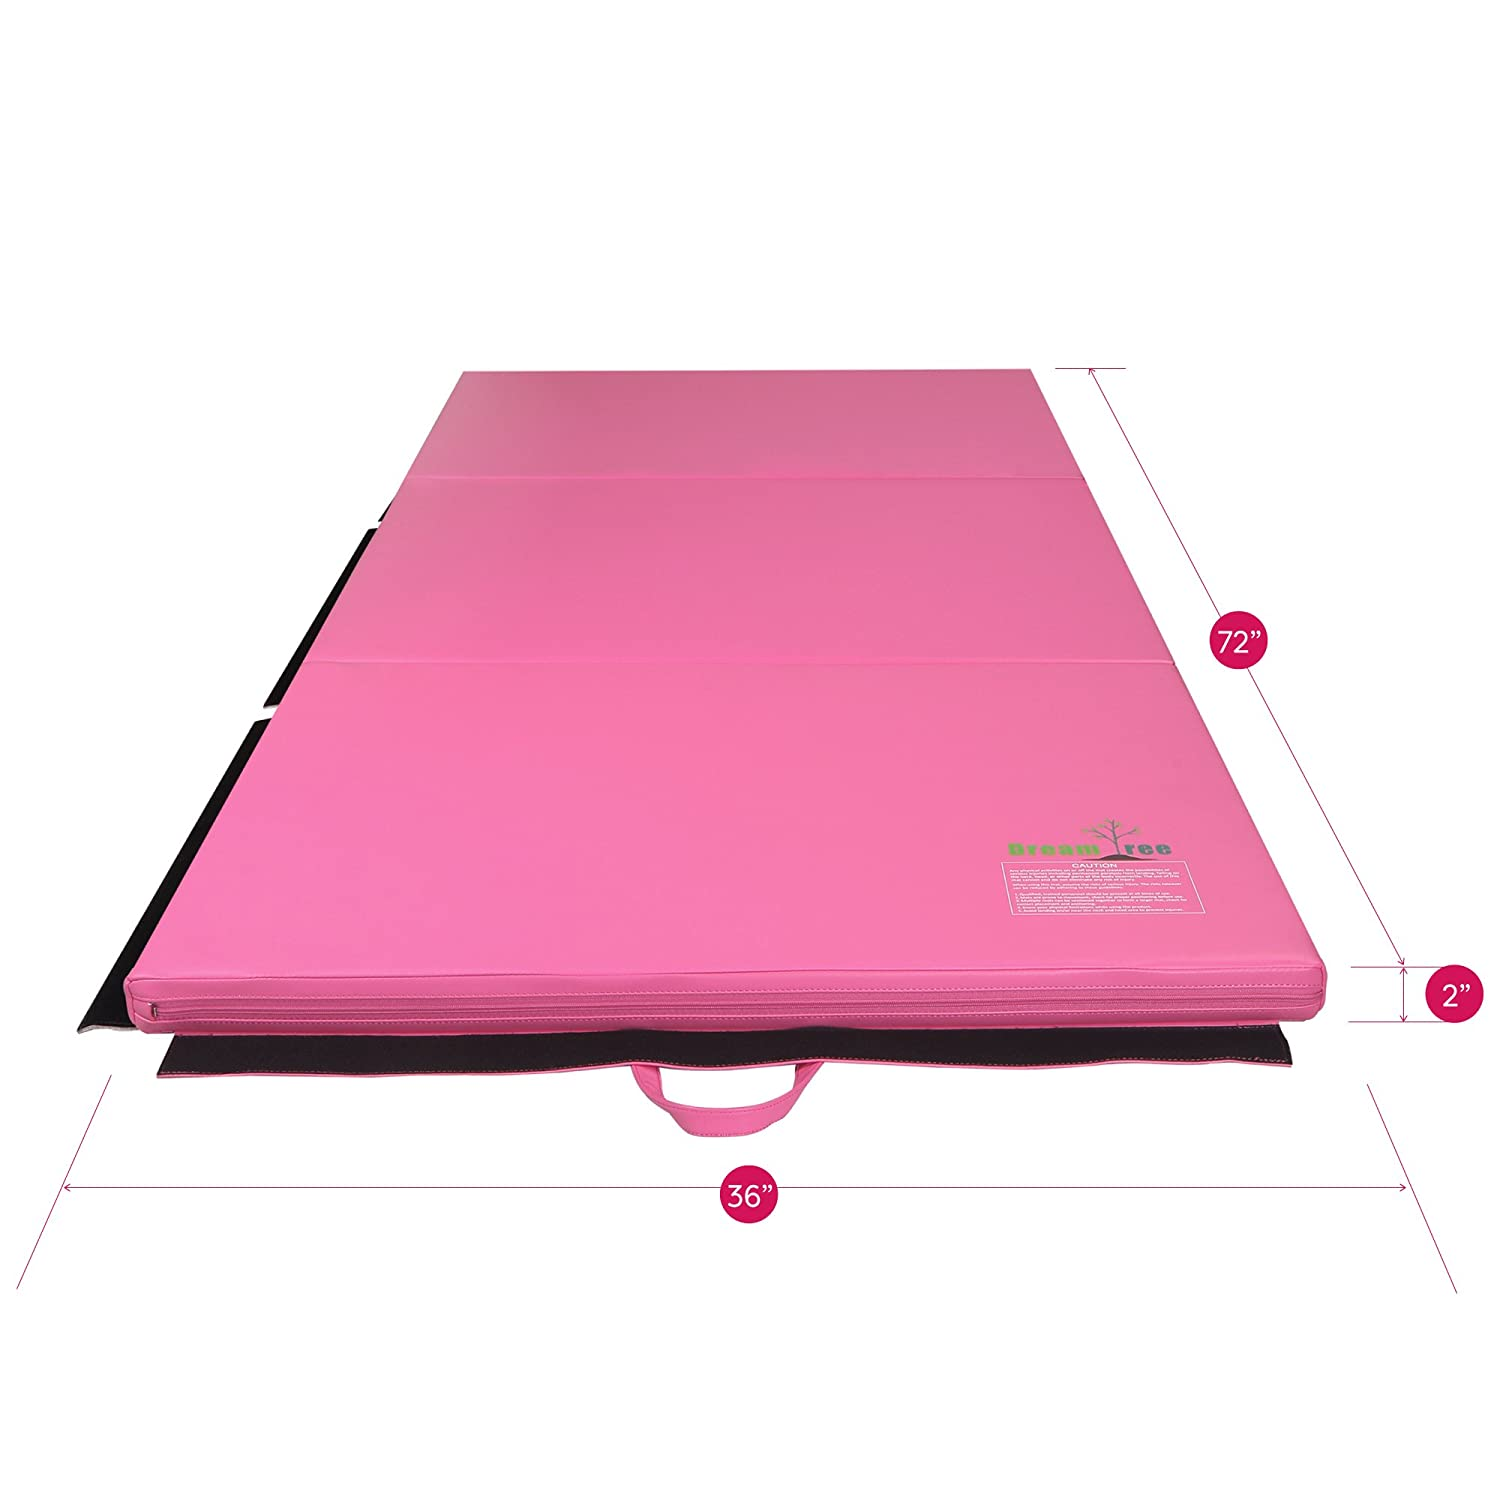 3 x 6 Tri Folding Tumbling Mats with Carrying Handles for Home /& Gym Execise Workout Pink Best Price Mattress Dream Tree Gymnastics Mat